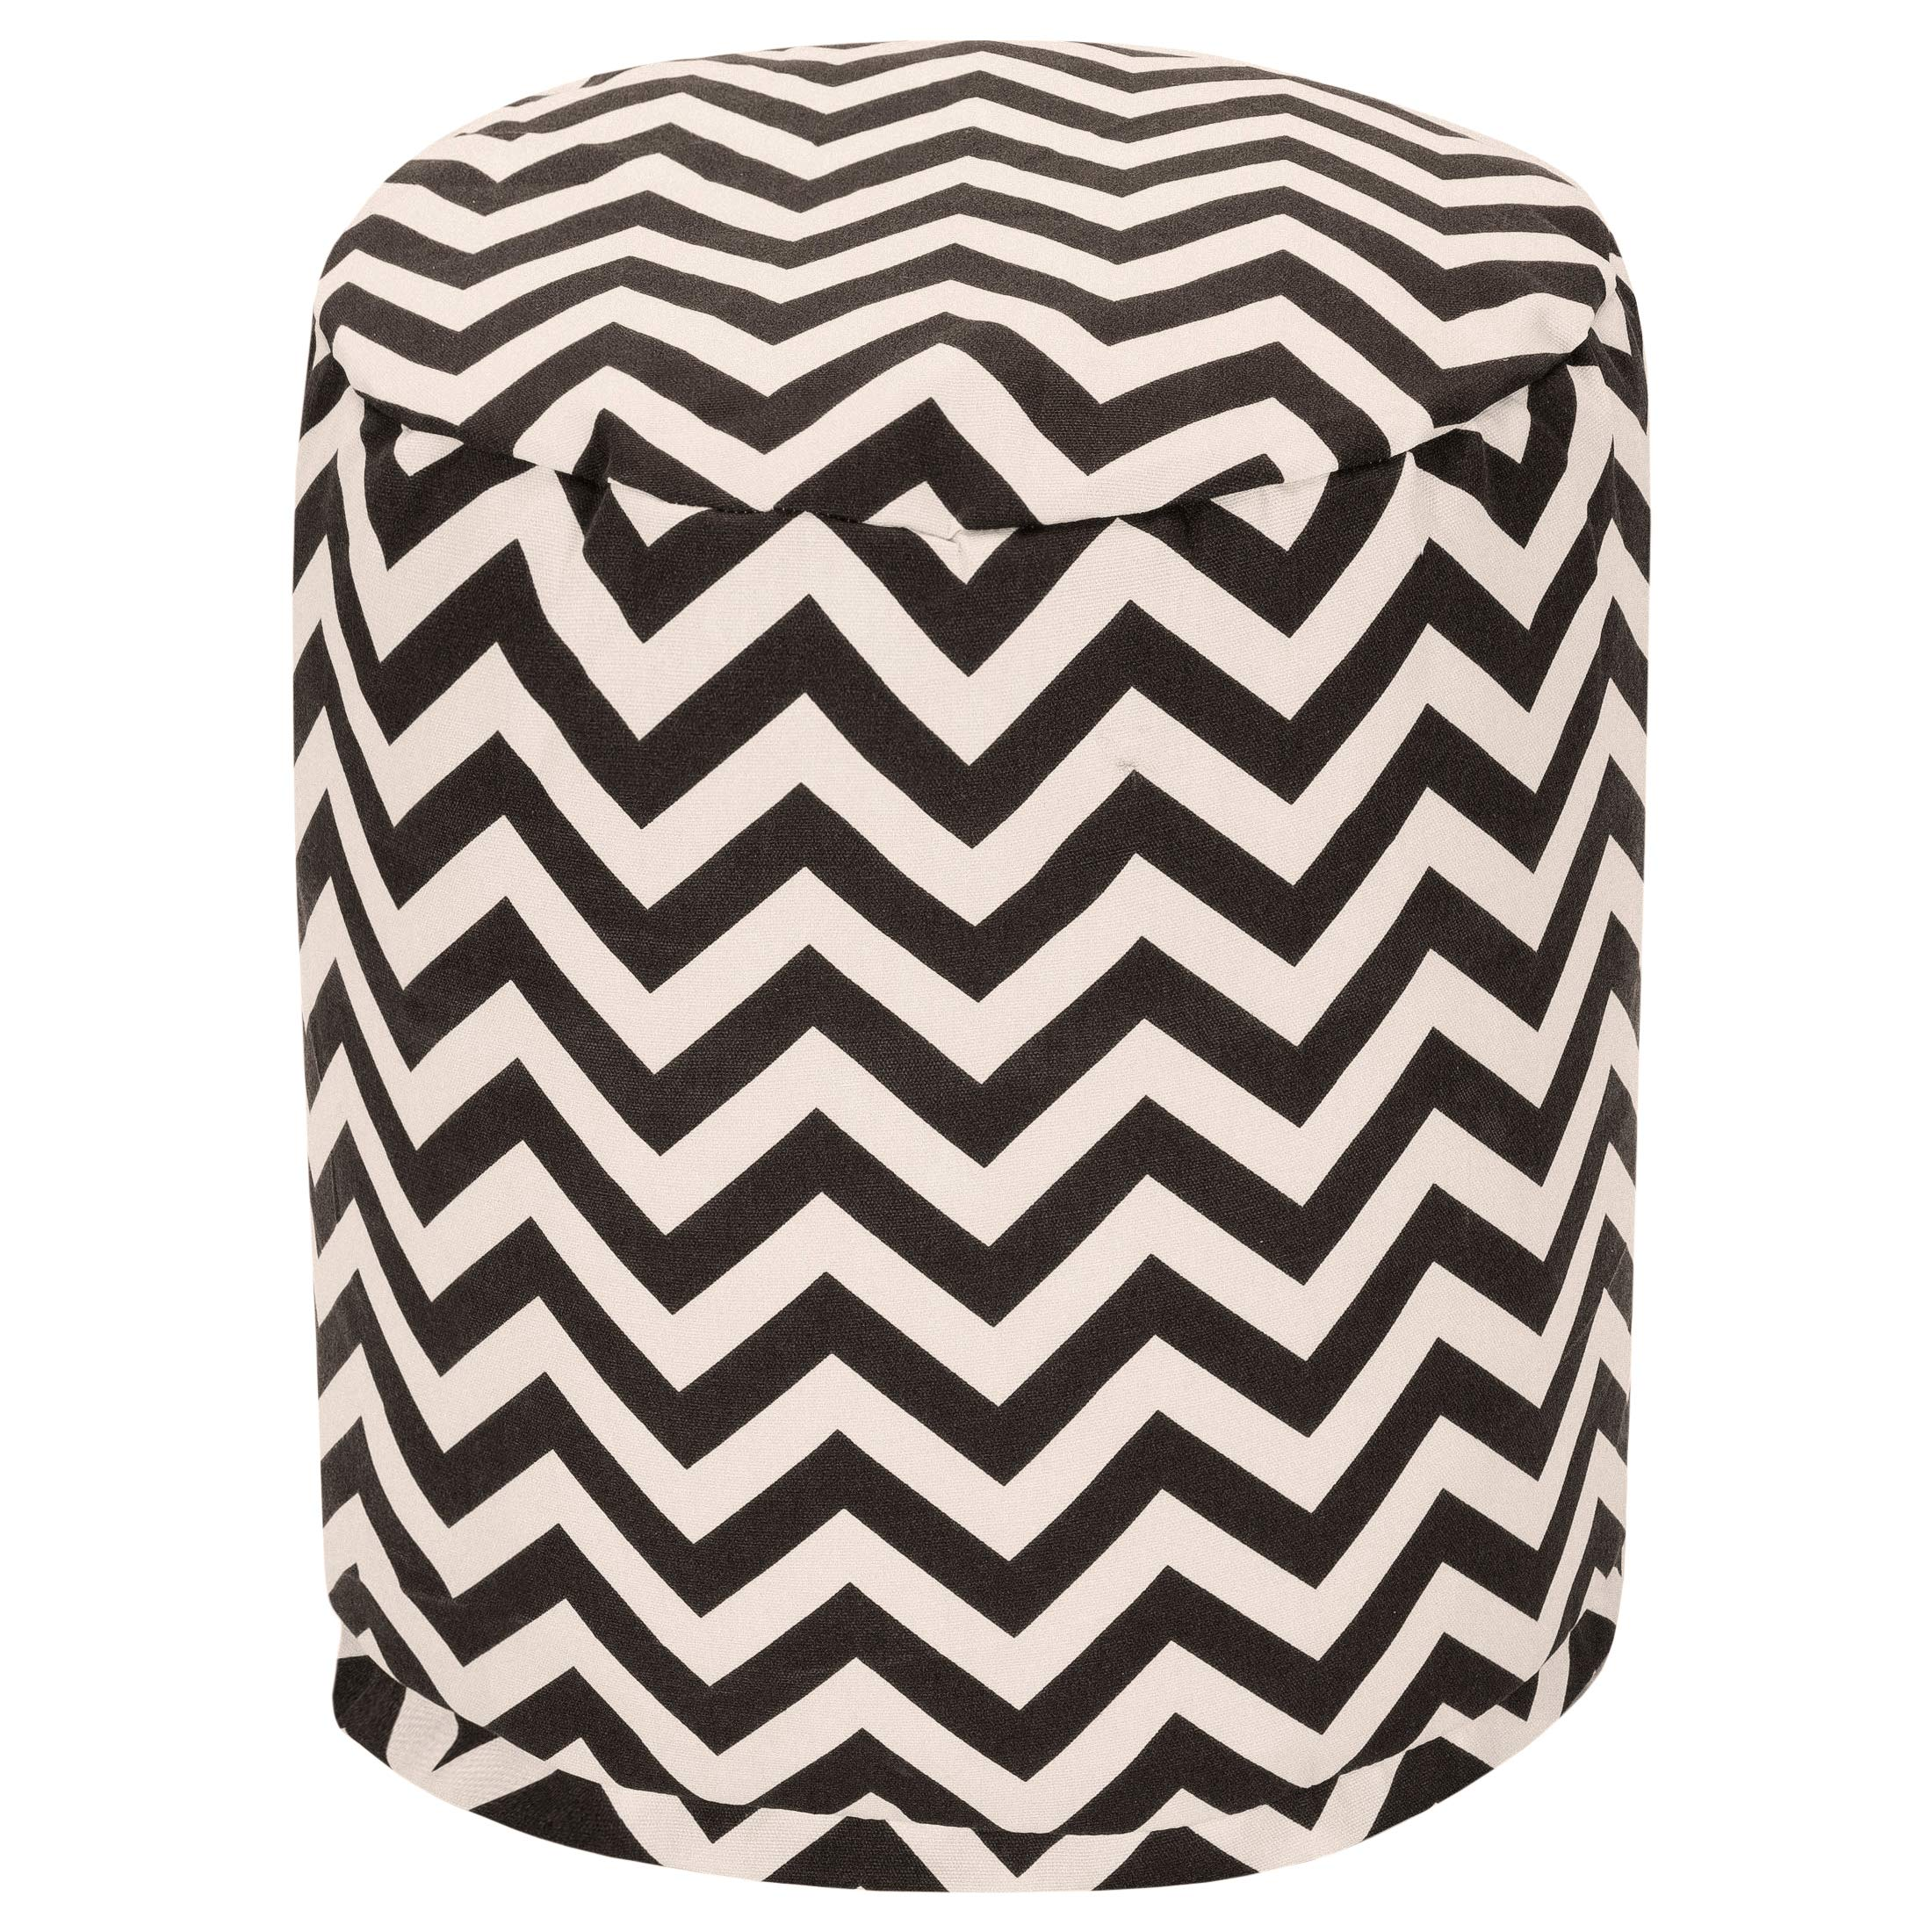 Majestic Home Goods Black Chevron Indoor/Outdoor Bean Bag Ottoman Pouf 16'' L x 16'' W x 17'' H